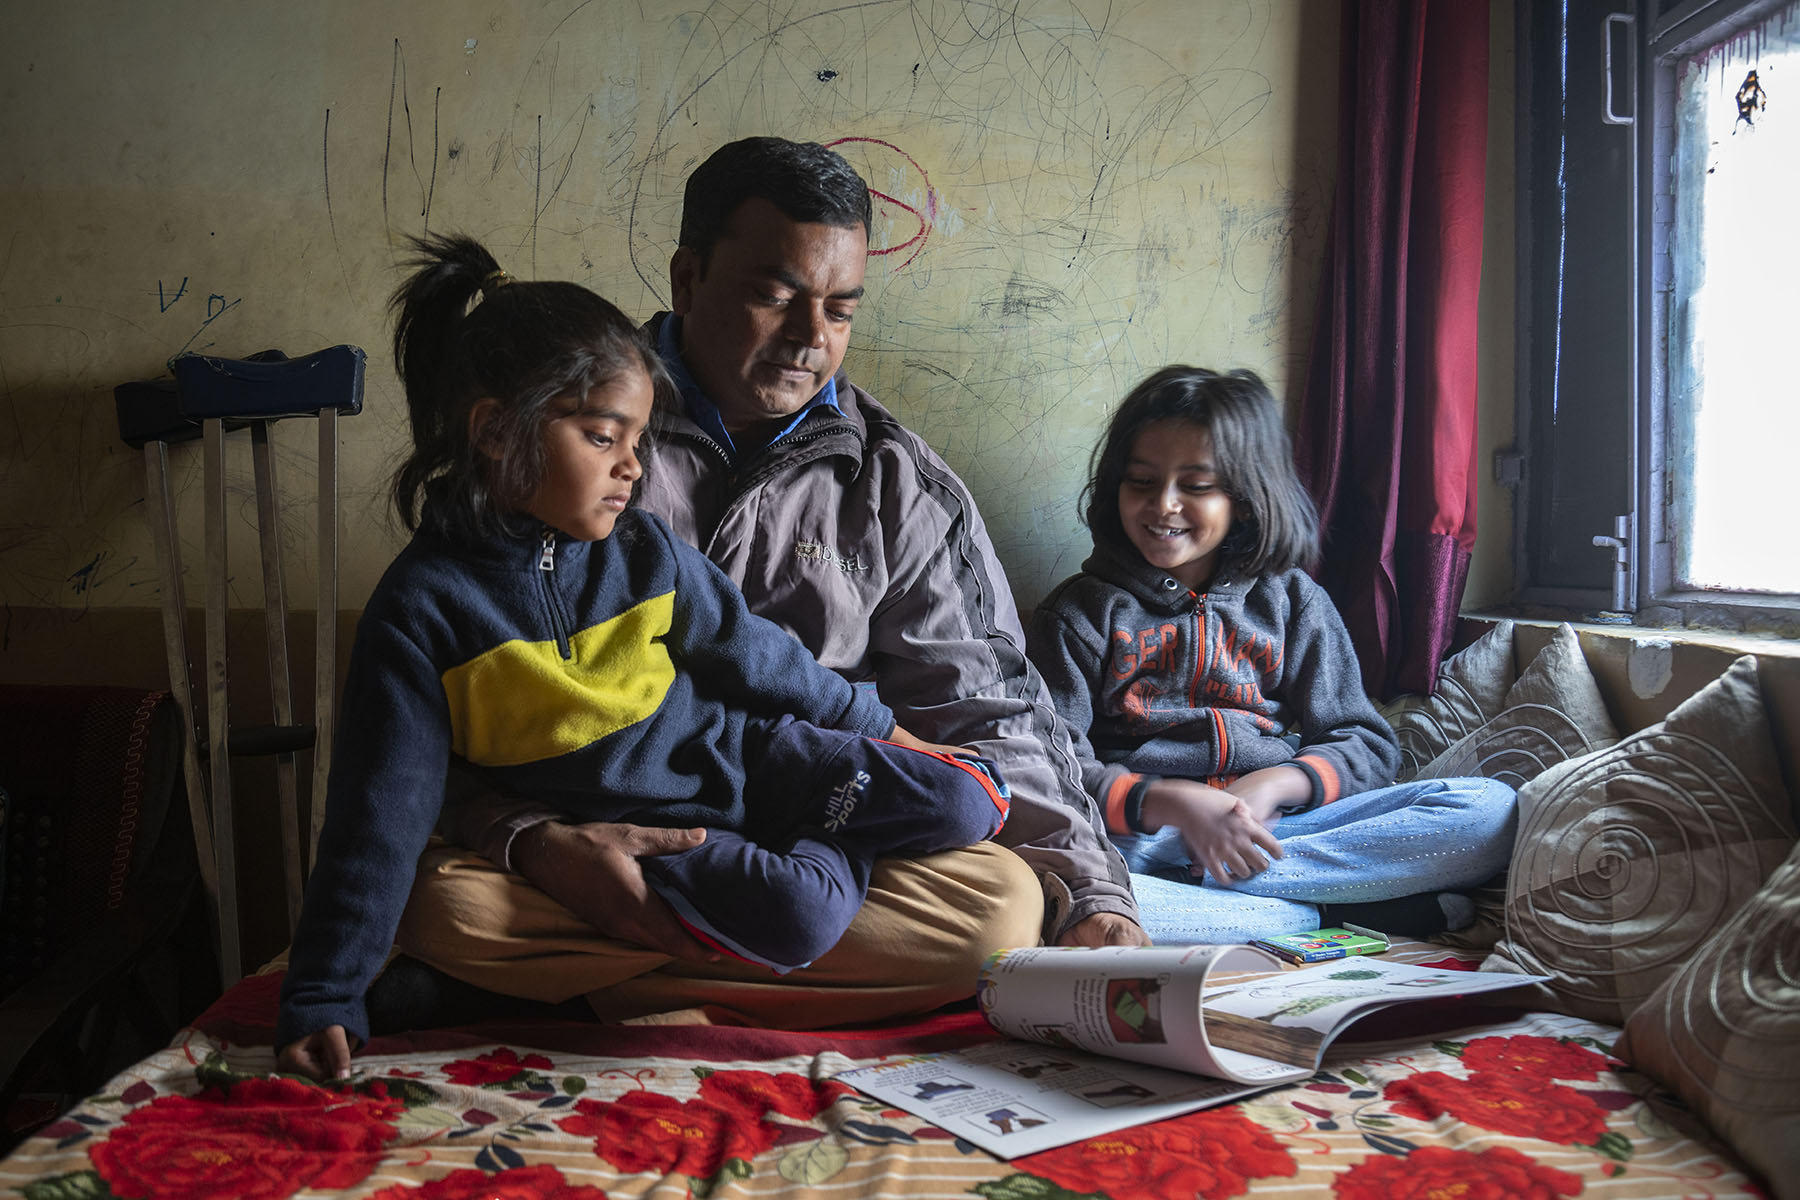 Ameer sitting crosslegged on a bed with his two daughters Areeba and Aayat on either side, turning the pages of a children's book. The wall behind them is covered with childish scribbles.